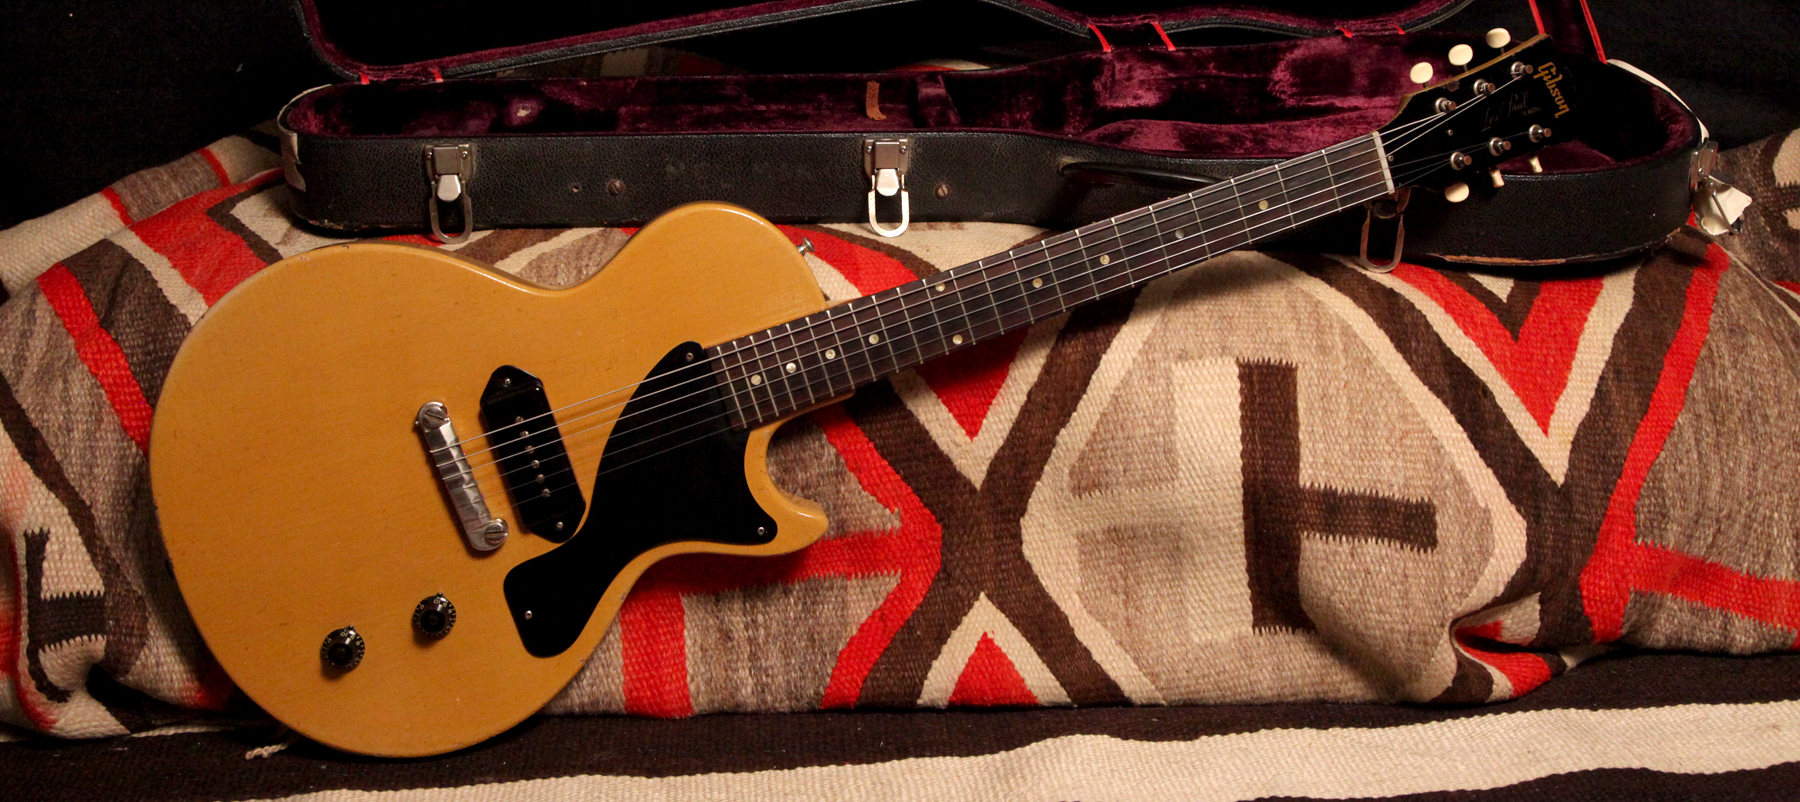 Gibson 1958 Les Paul Jr Tv Yellow Front Rumble Seat Music